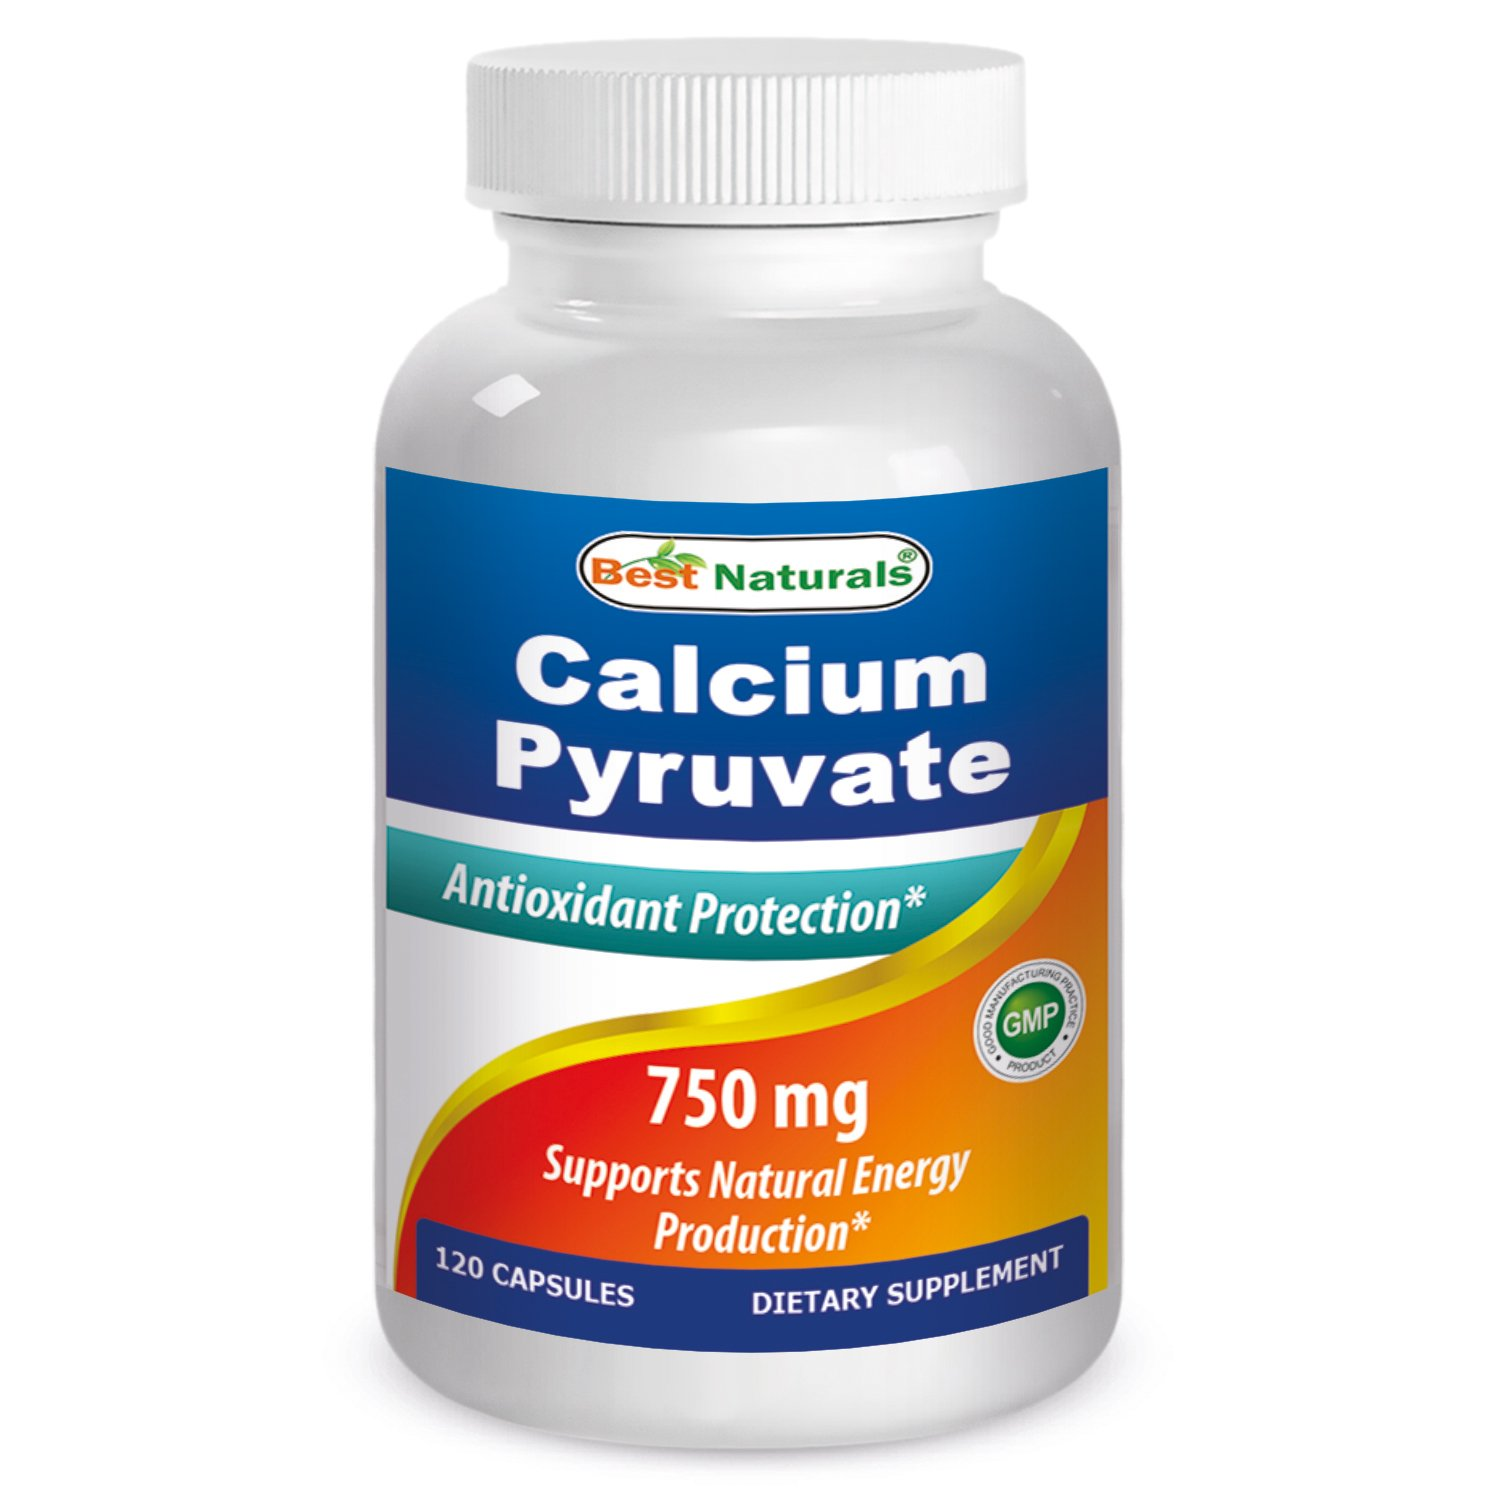 Calcium Pyruvate 750 mg 120 Capsules by Best Naturals (Pack of 3)